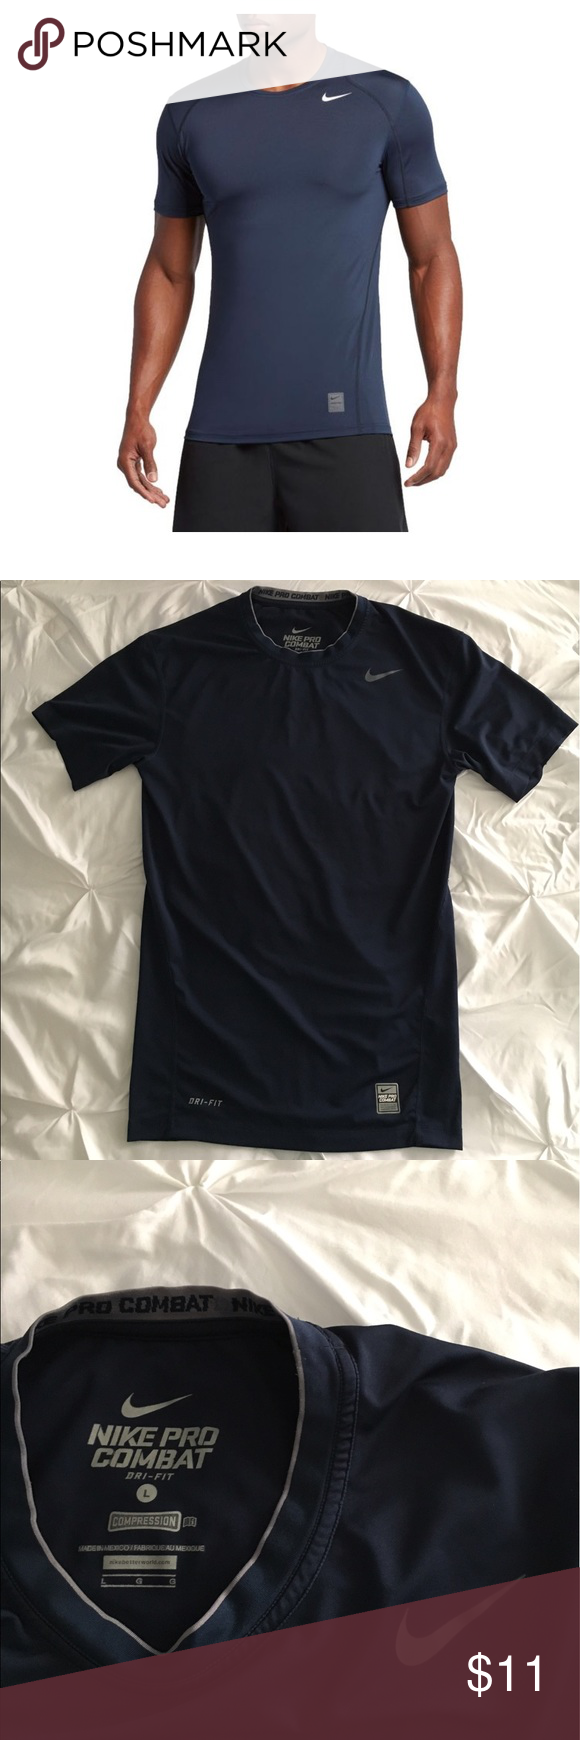 8d61c0da Nike Pro Combat Compression Shirt, Size Large Nike Pro Combat Compression  Shirt, Size Large. Dri - Fit. Navy Blue. Used in good condition!